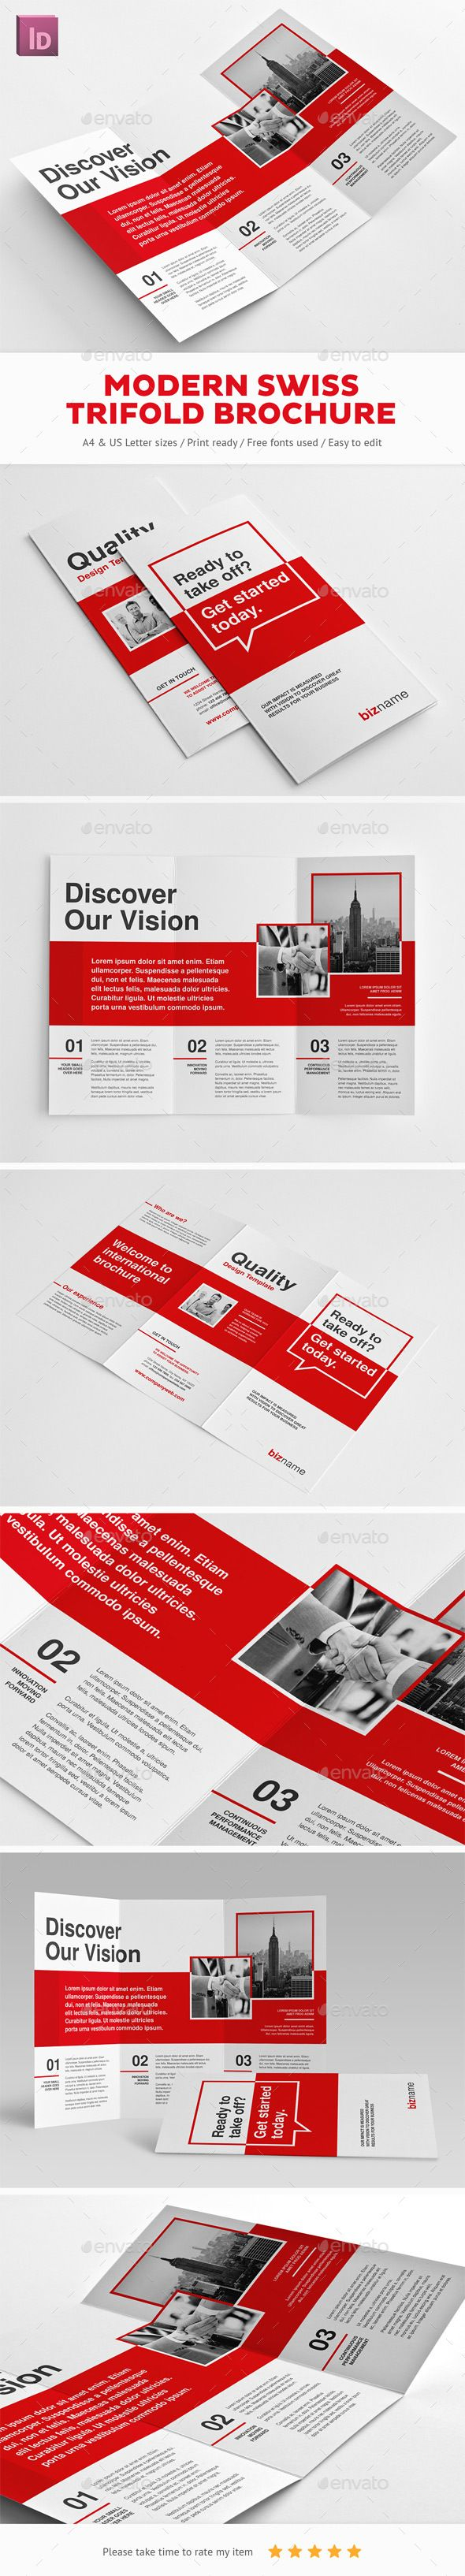 Modern Swiss Trifold Brochure Template InDesign INDD. Download here…